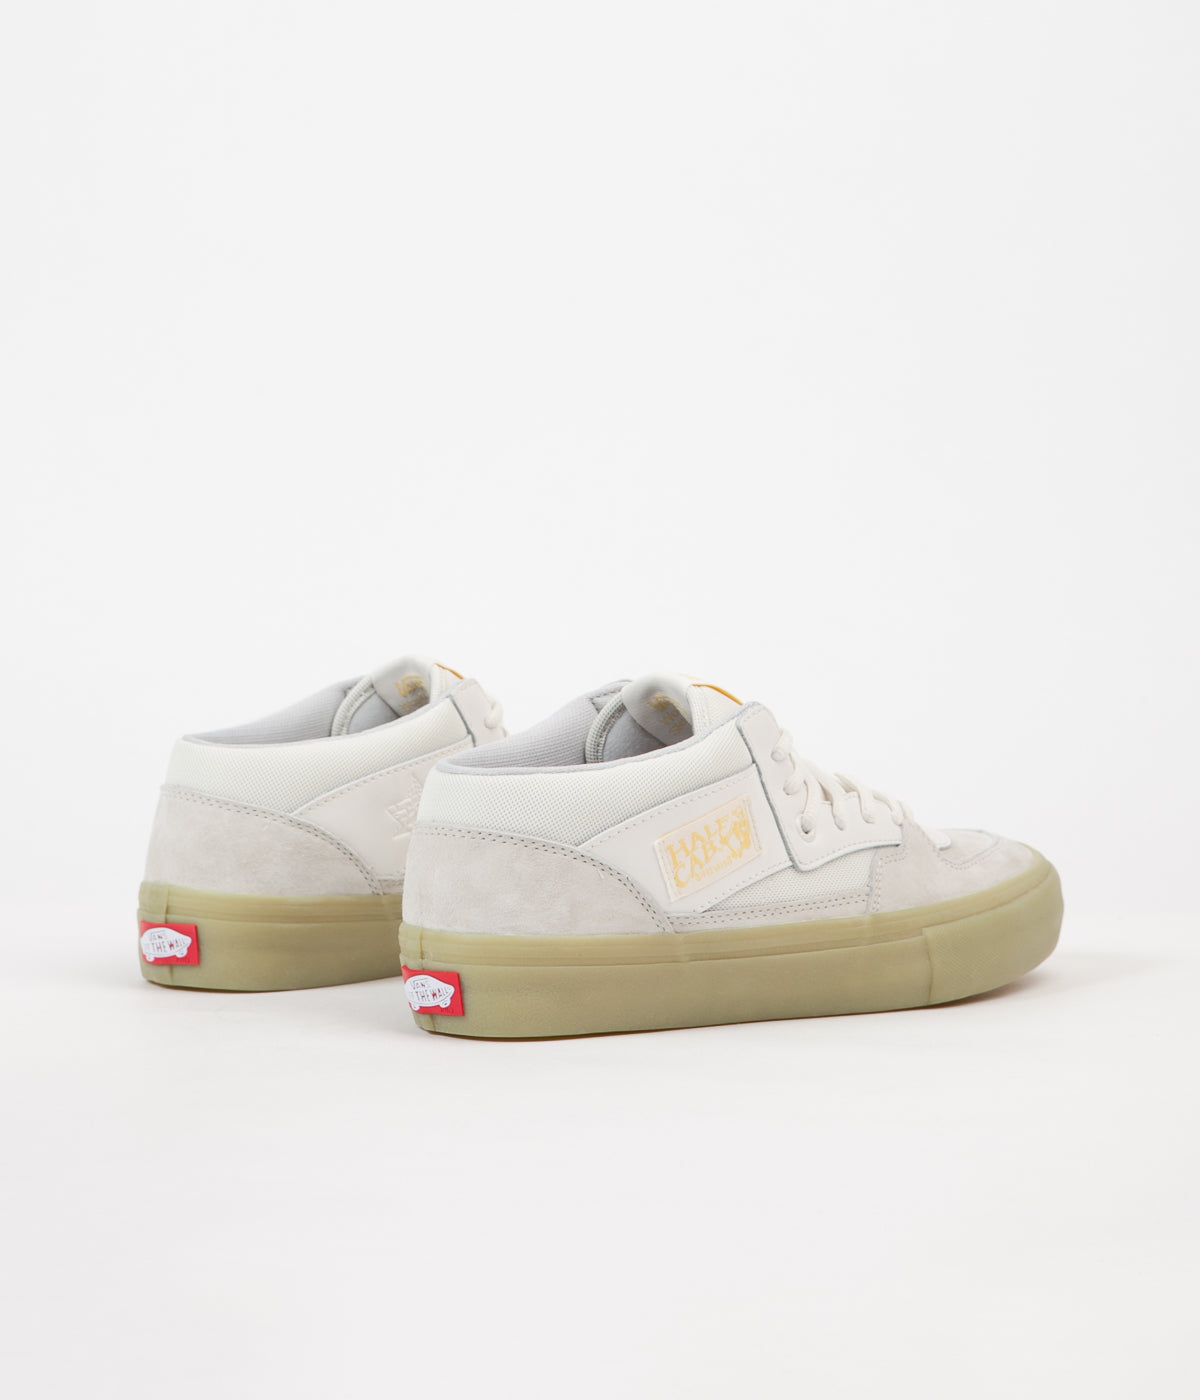 891dc6c0c5 ... Size 8.5 Glow In The Dark VN0A38CPP9Q White ... Vans x Pyramid Country  Half Cab Pro GITD Shoes - White Glow In ...